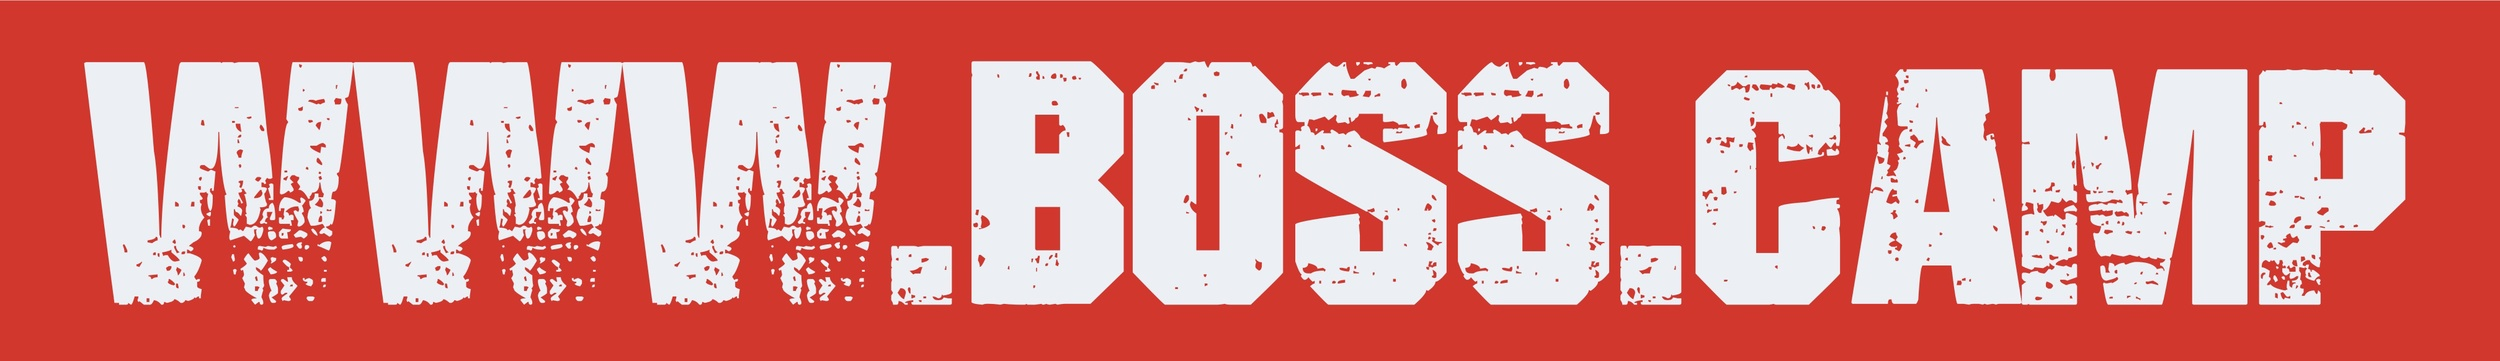 Join boss camp at www.boss.camp